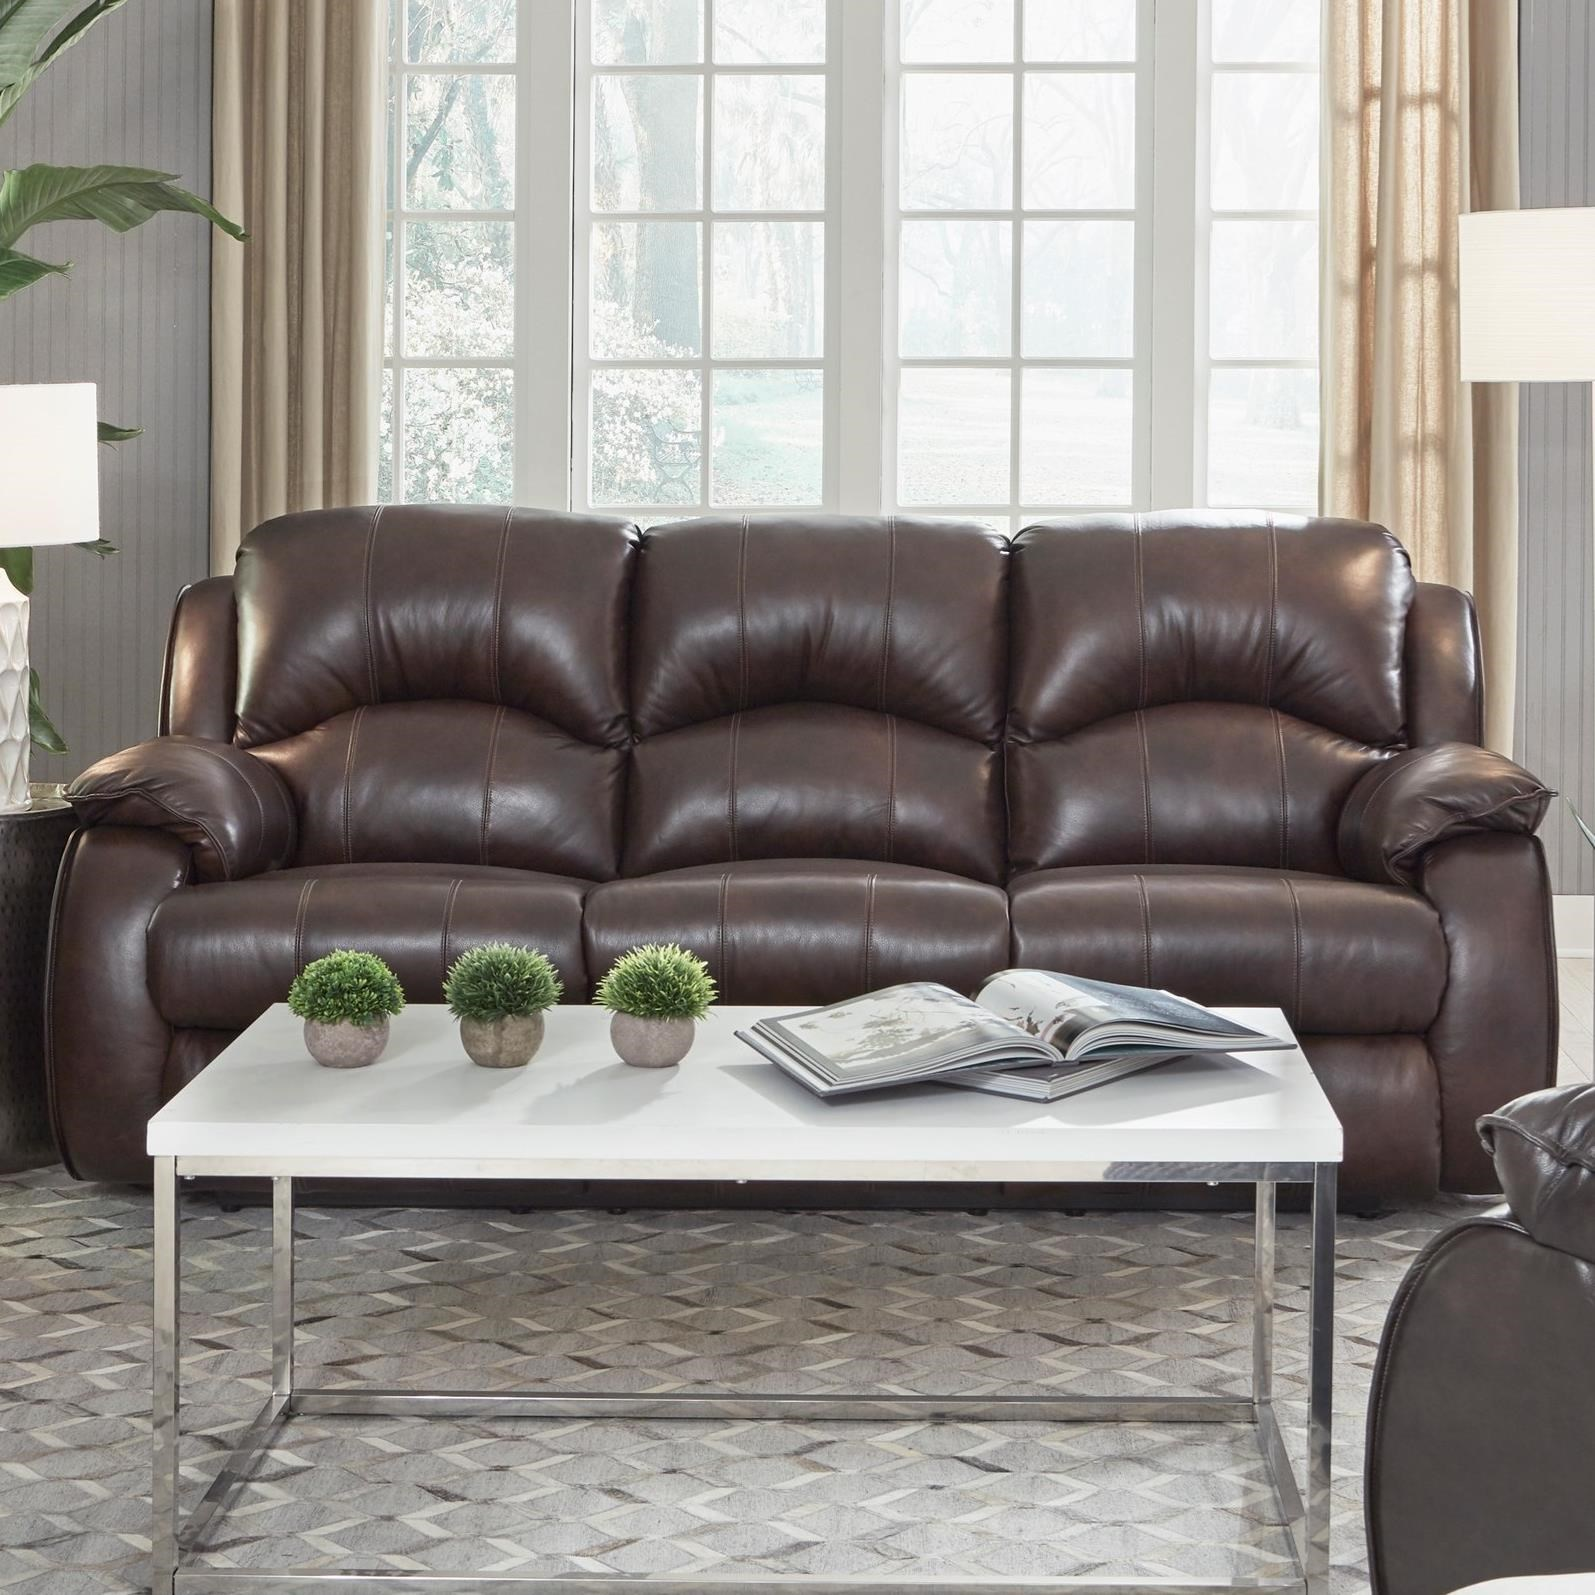 Cagney Power Headrest Reclining Sofa by Southern Motion at Darvin Furniture